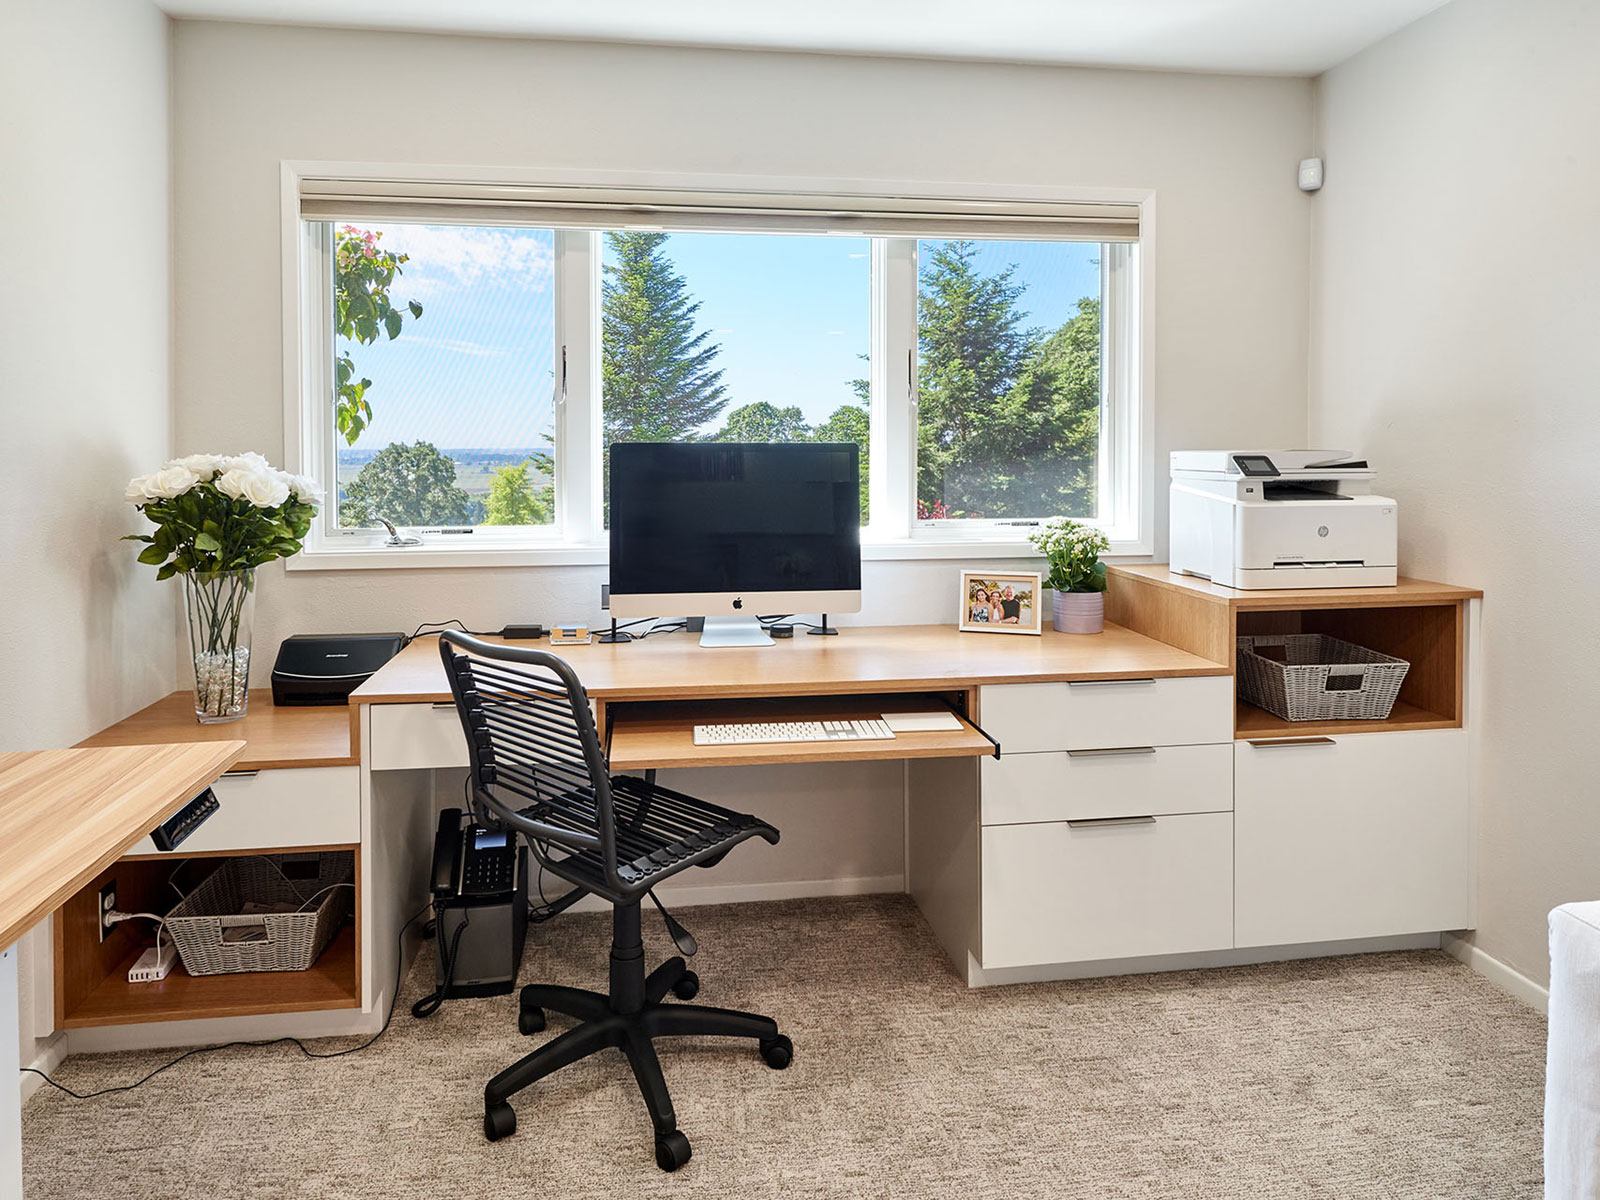 Basement remodel includes home office design. Custom home remodel from Henderer Design + Build + Remodel